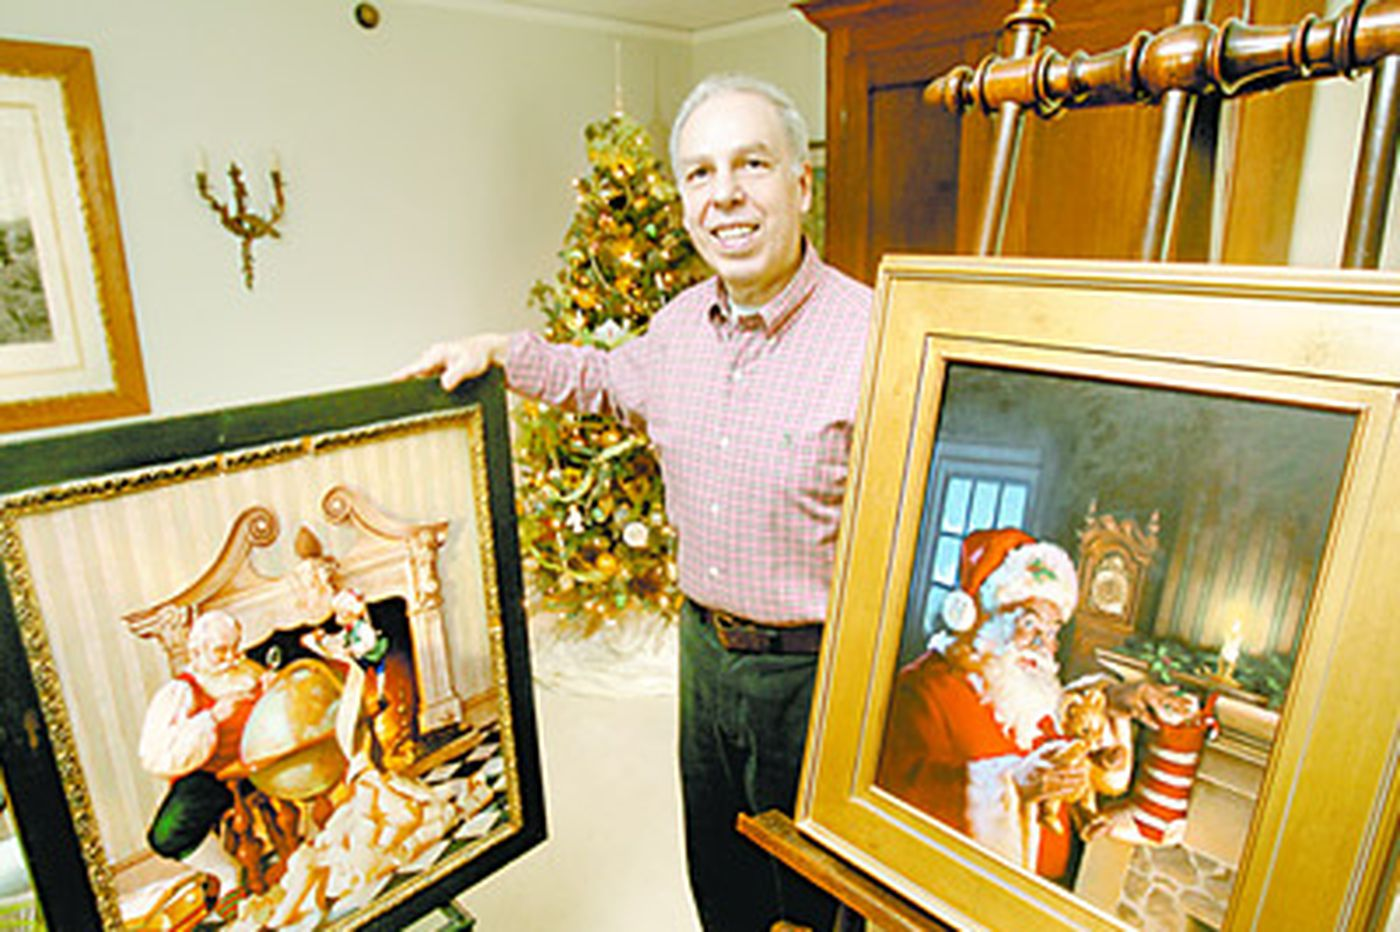 Artist makes sure Santa Claus is real